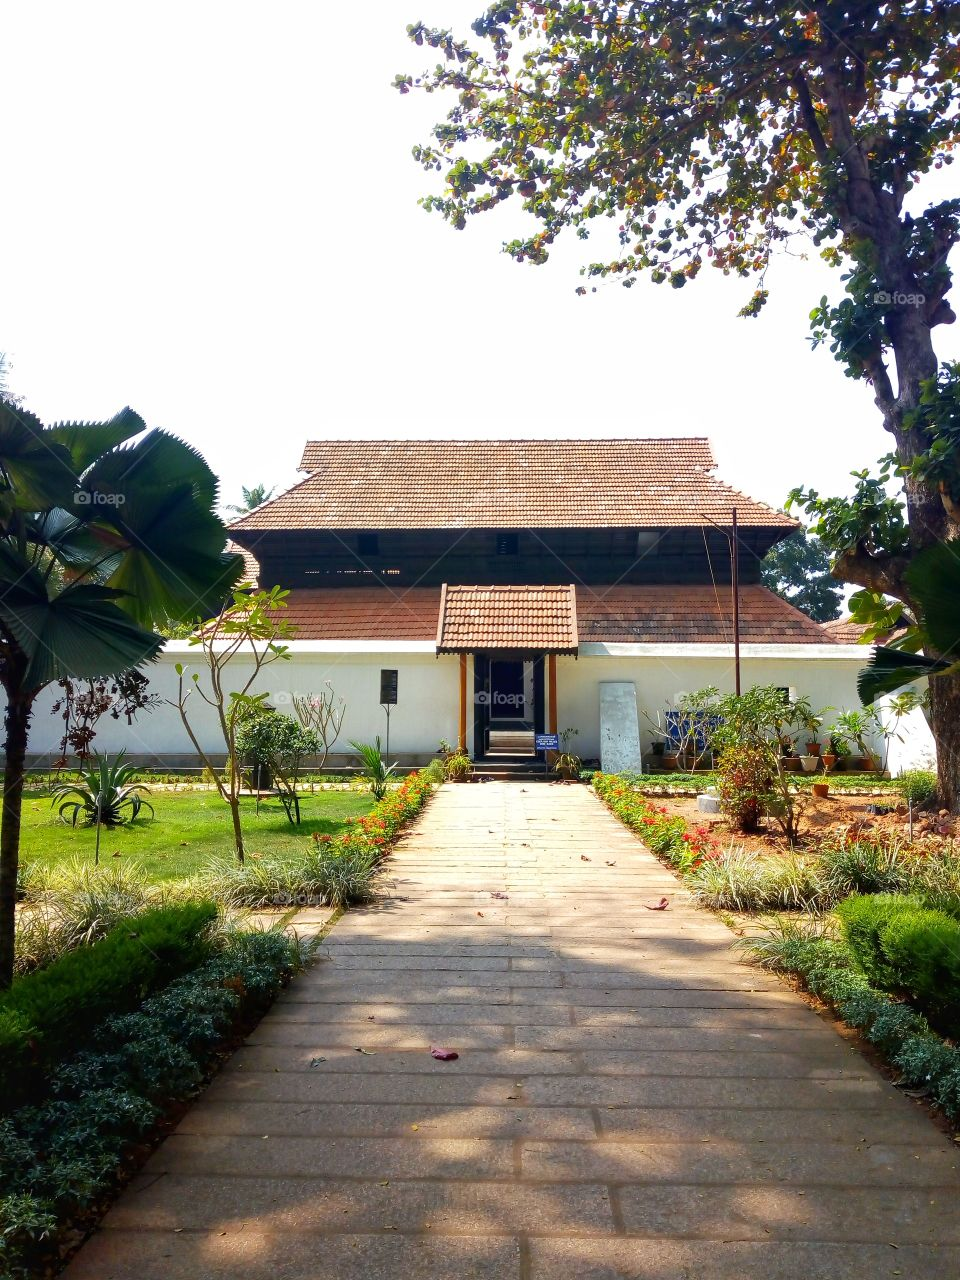 The Krishnapuram Palace is a palace and museum located in Kayamkulam near Alappuzha in Alappuzha district, Kerala in southwestern India. It was built in the 18th century by Anizham Thirunal Marthanda Varma (1729–1758 AD), the Travancorekingdom.Kerala